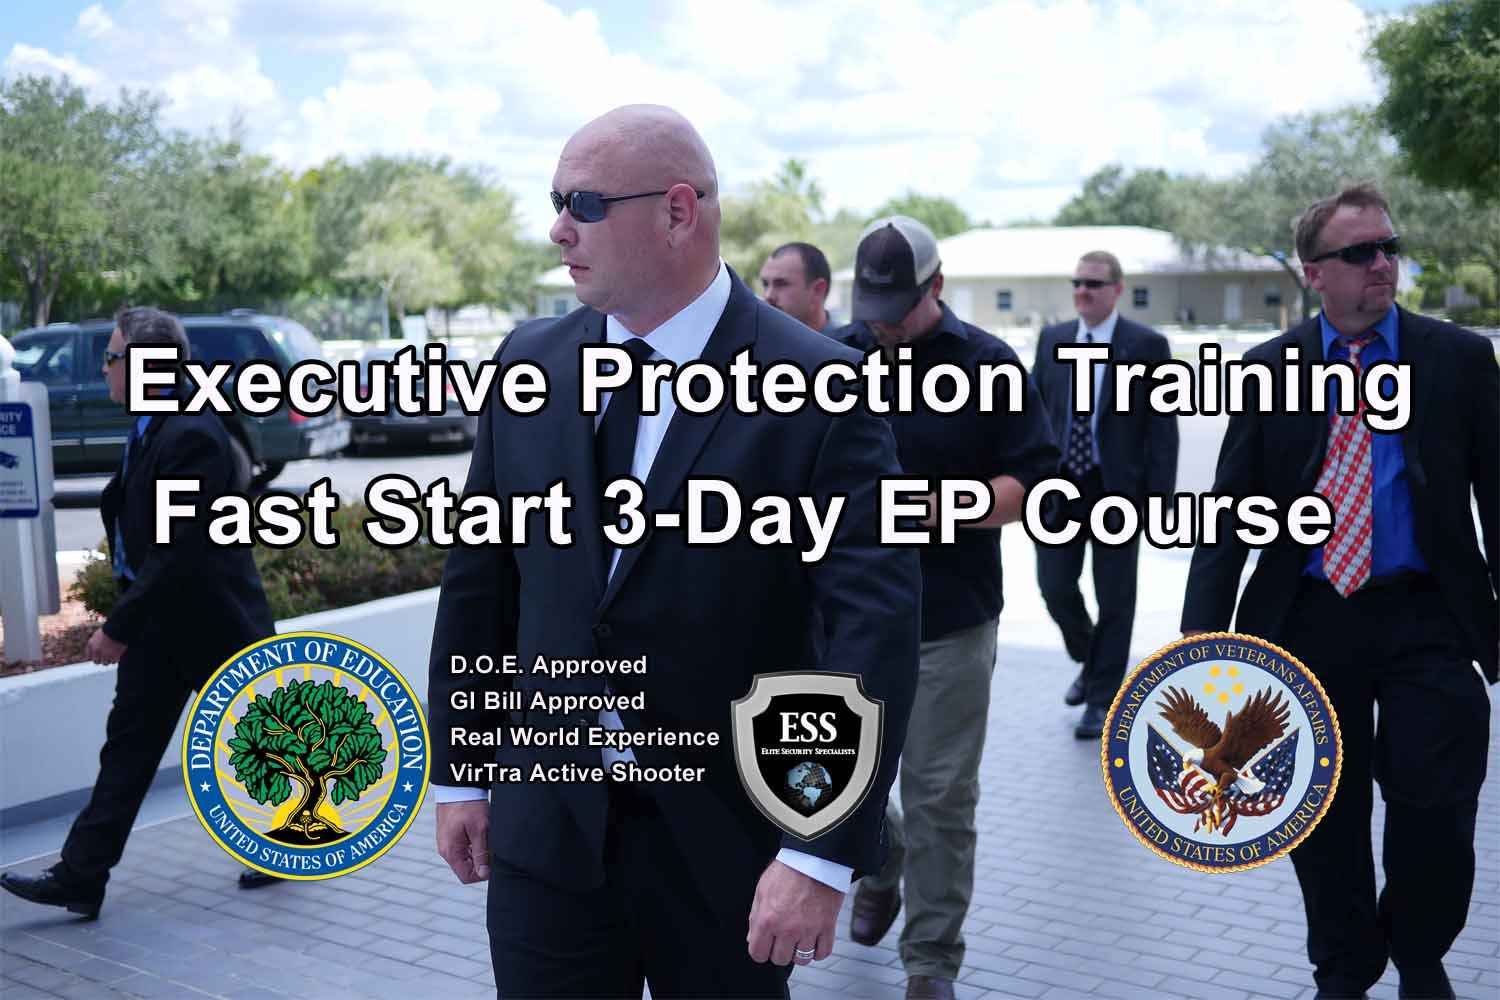 GI Bill Approved Executive Protection Training - Kentucky - 3 Day Fast Start and Refresher